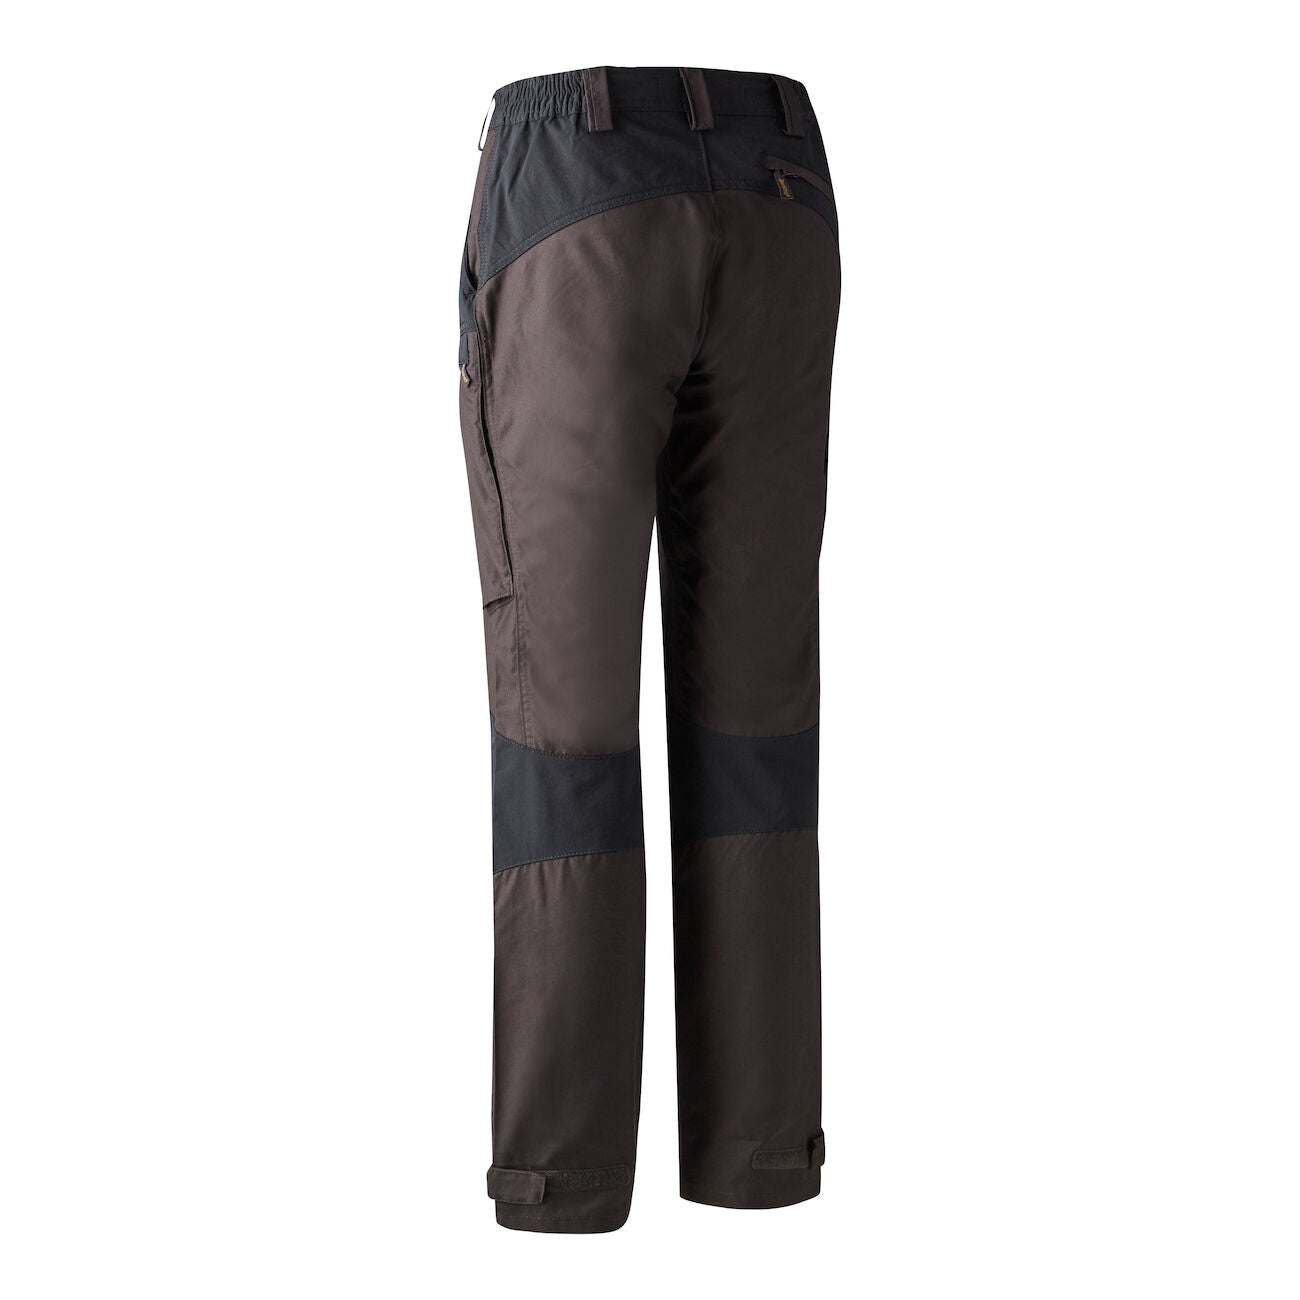 Deerhunter Lady Ann Trousers - Dark Prune